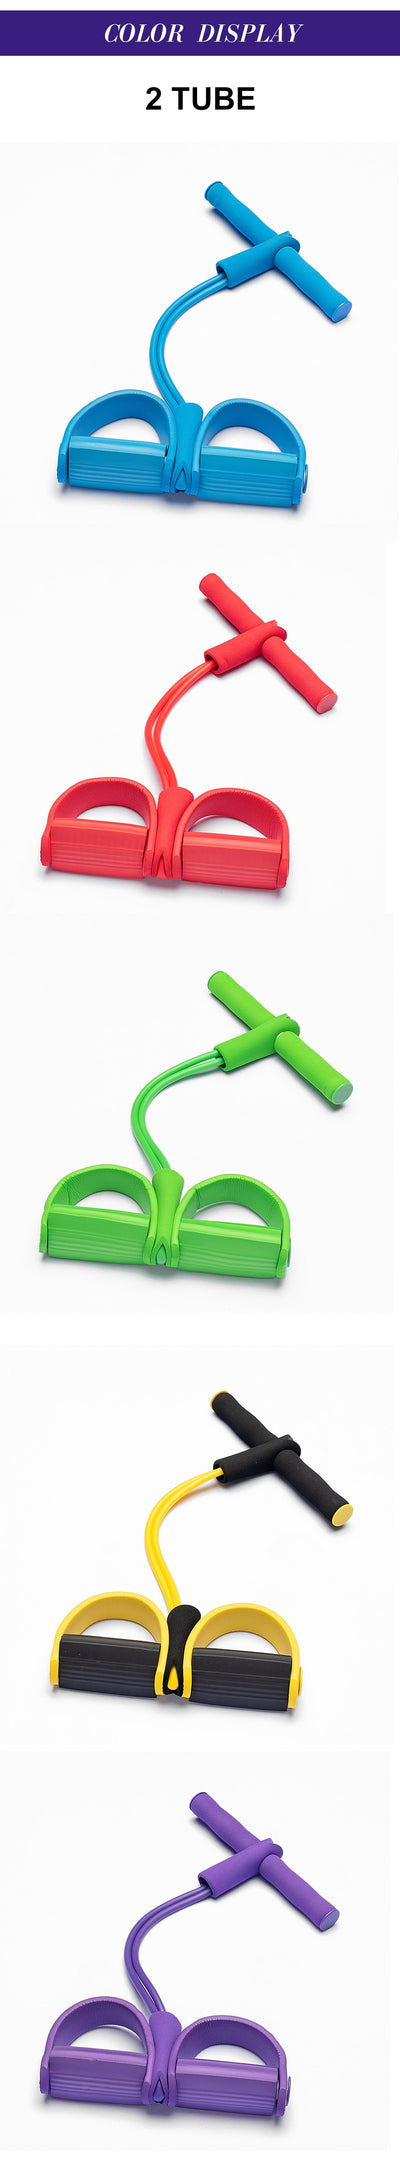 Resistance Bands 4 tube pedal fitness - Neatlyfly